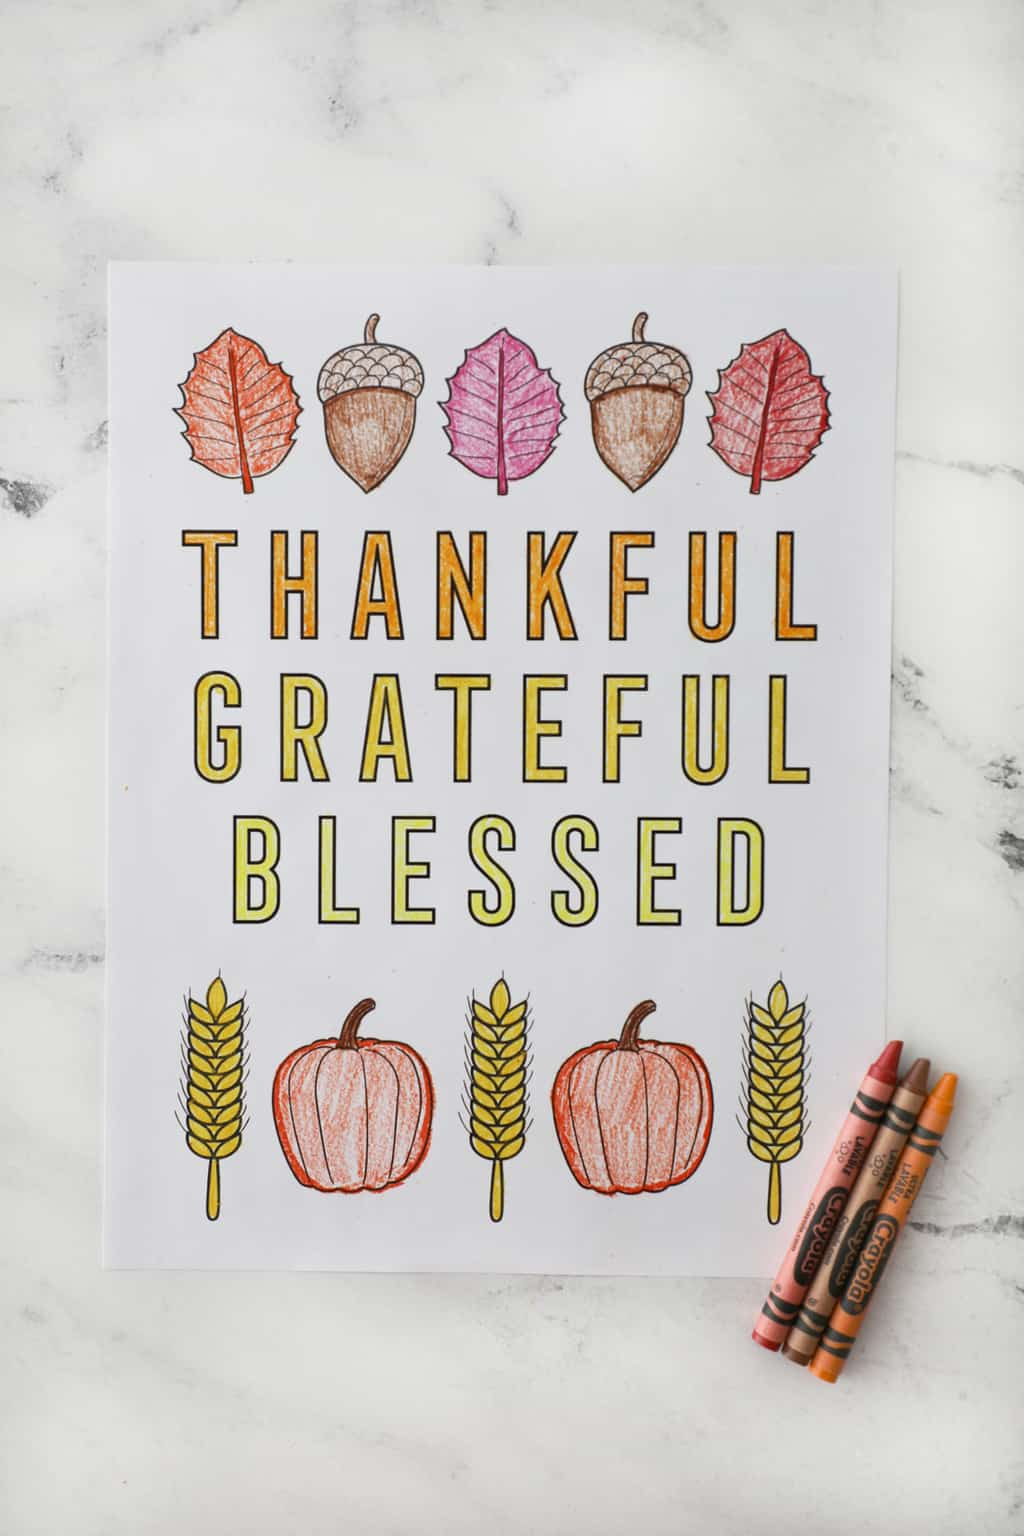 thankful grateful blessed coloring page on a granite countertop with crayons